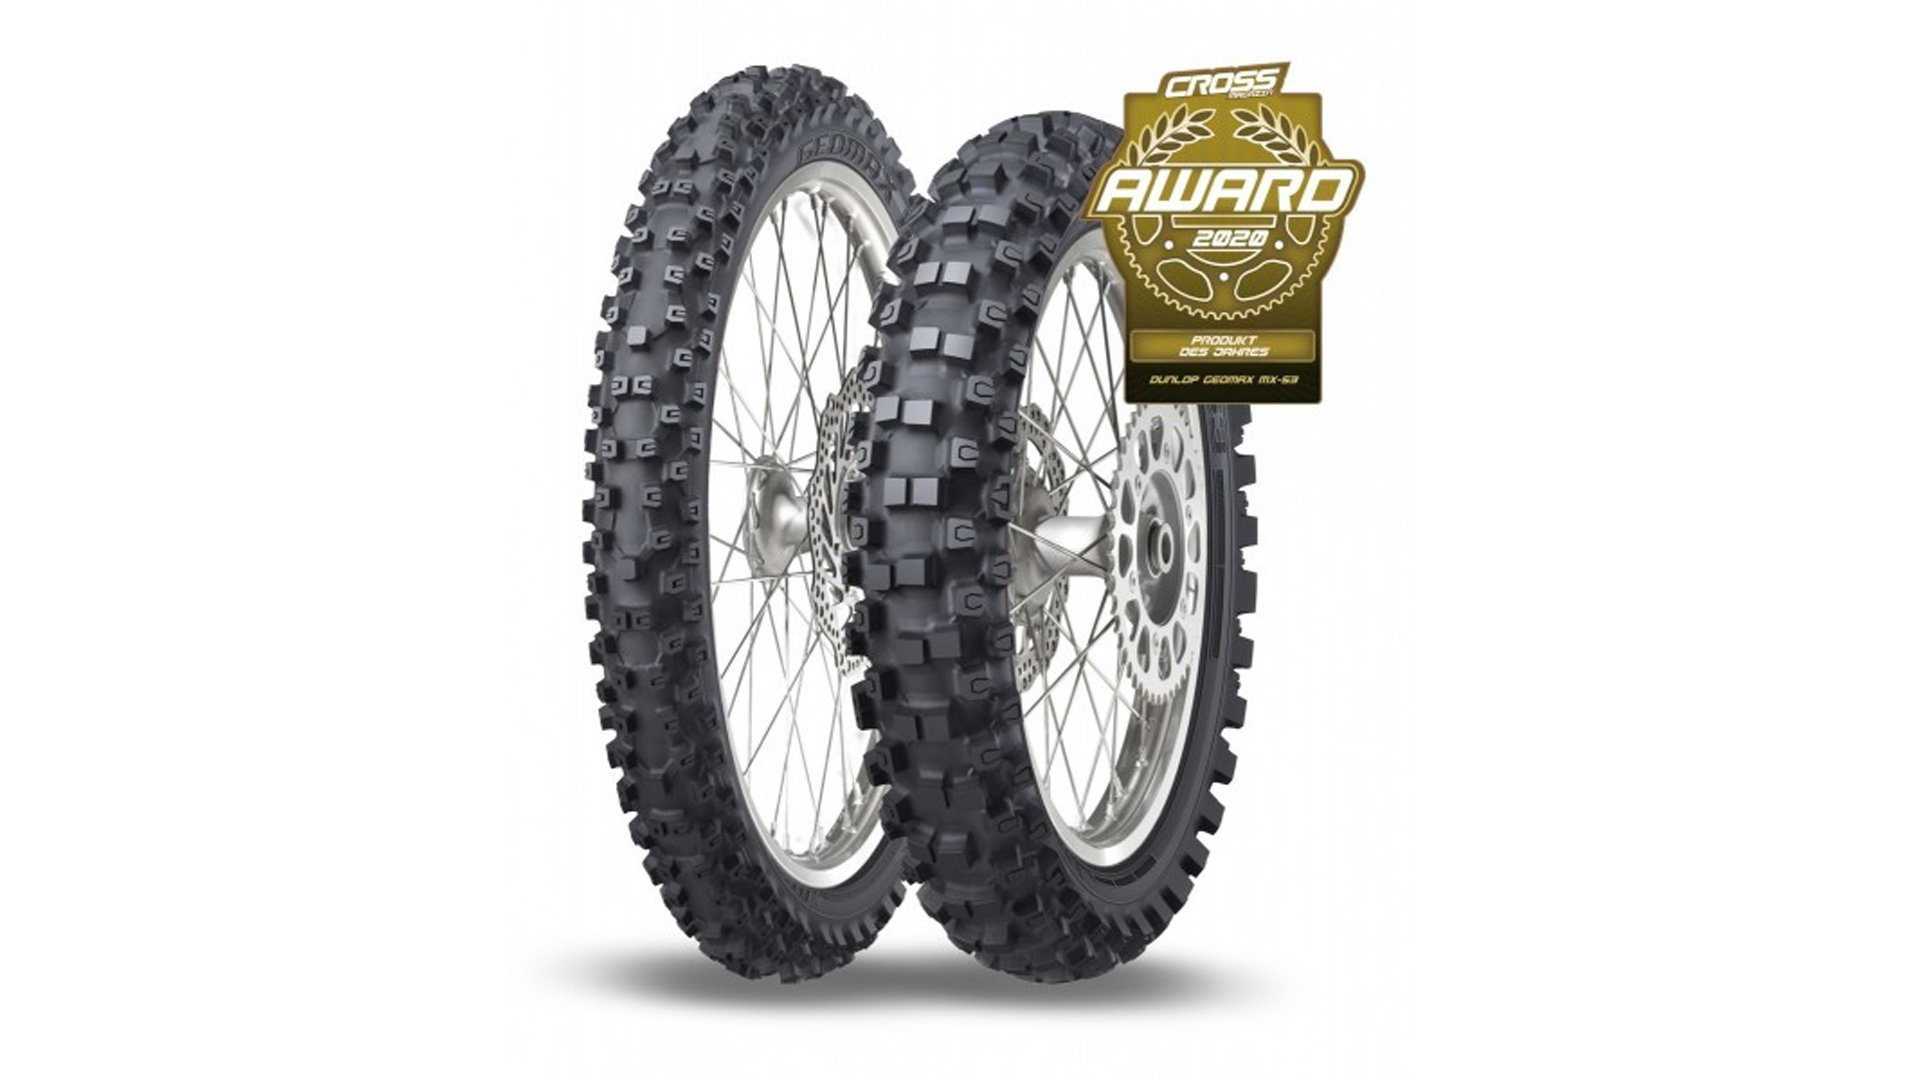 Dunlop Geomax MX53 named CROSS Magazin 'Product of the Year'